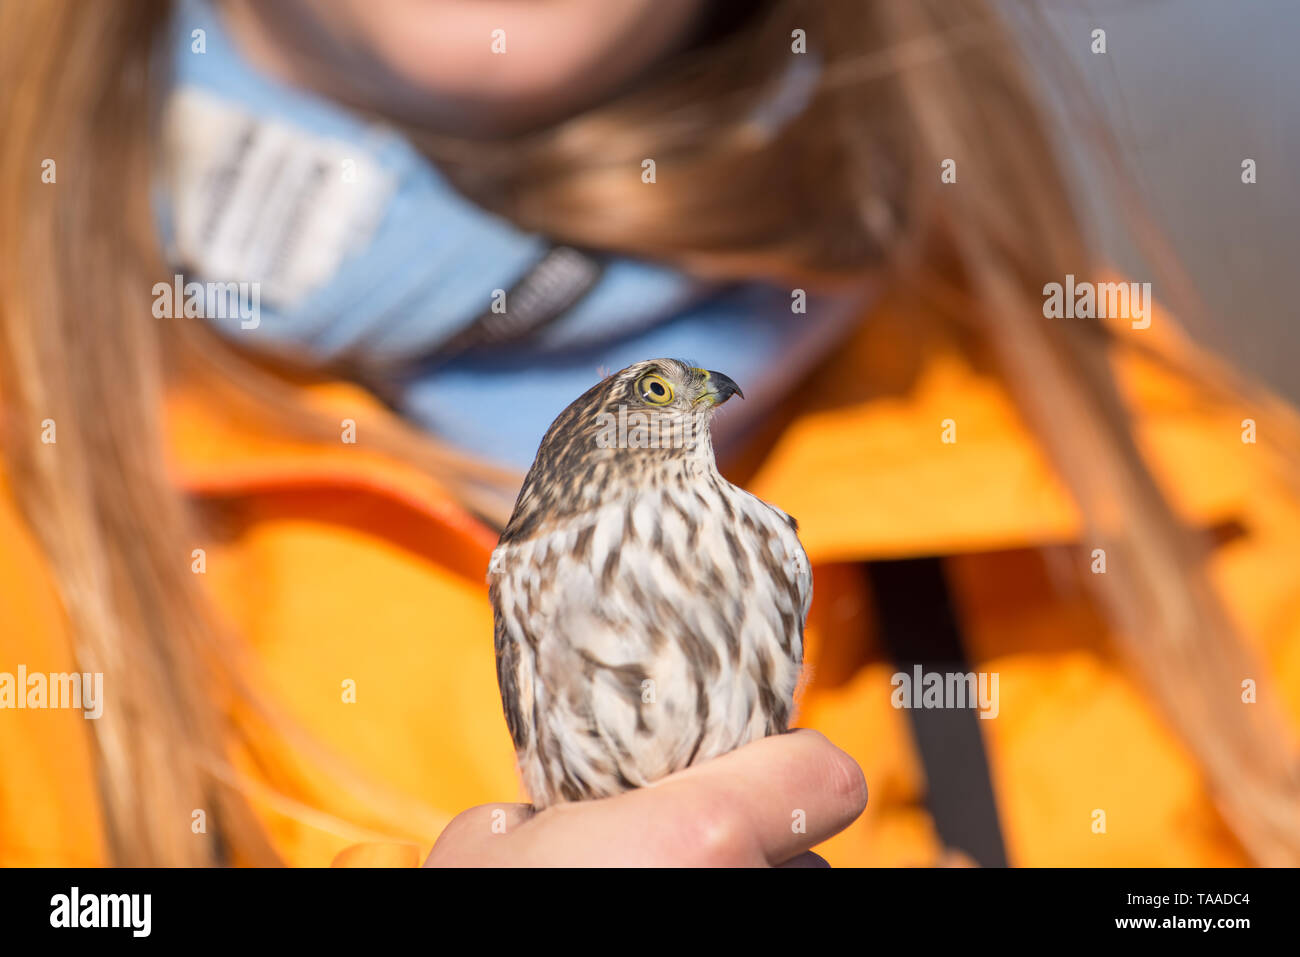 Educator holding (I believe) a sharp-shinned juvenile hawk - portrait close up - at Hawk Ridge Bird Observatory in Duluth, Minnesota during Fall migra - Stock Image